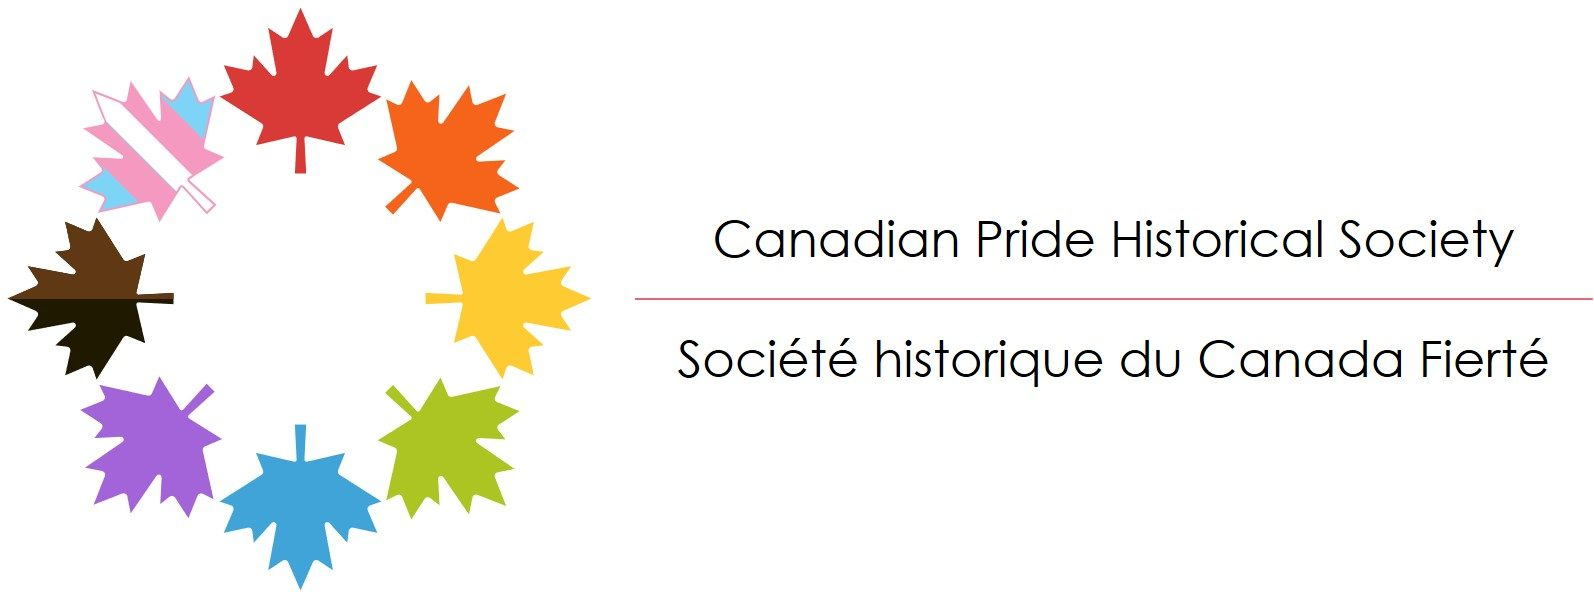 Canadian Pride Historical Society